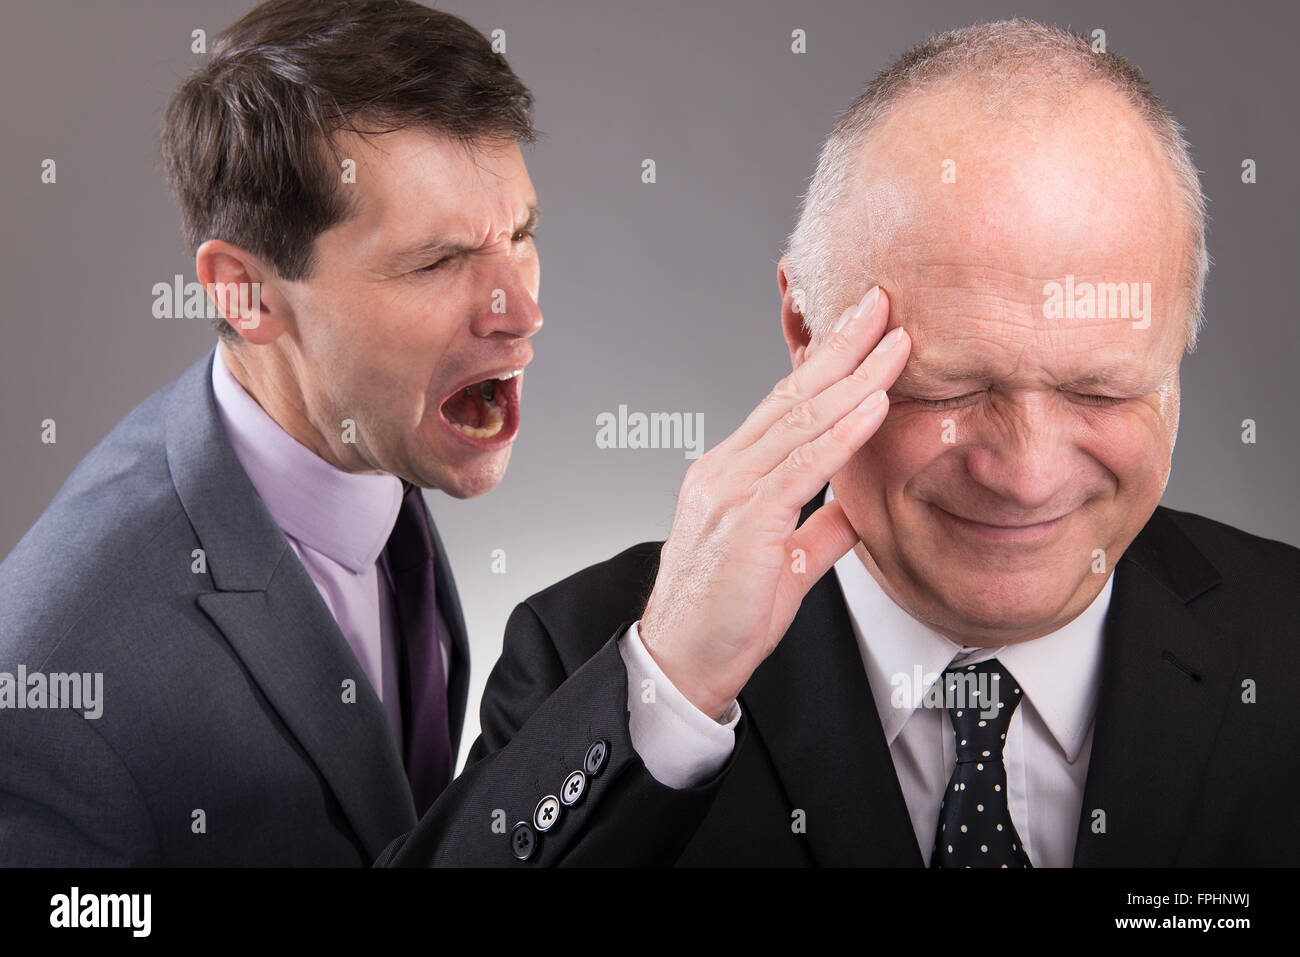 Stressed businessman in the foreground, with angry work colleague shouting at him from behind. - Stock Image